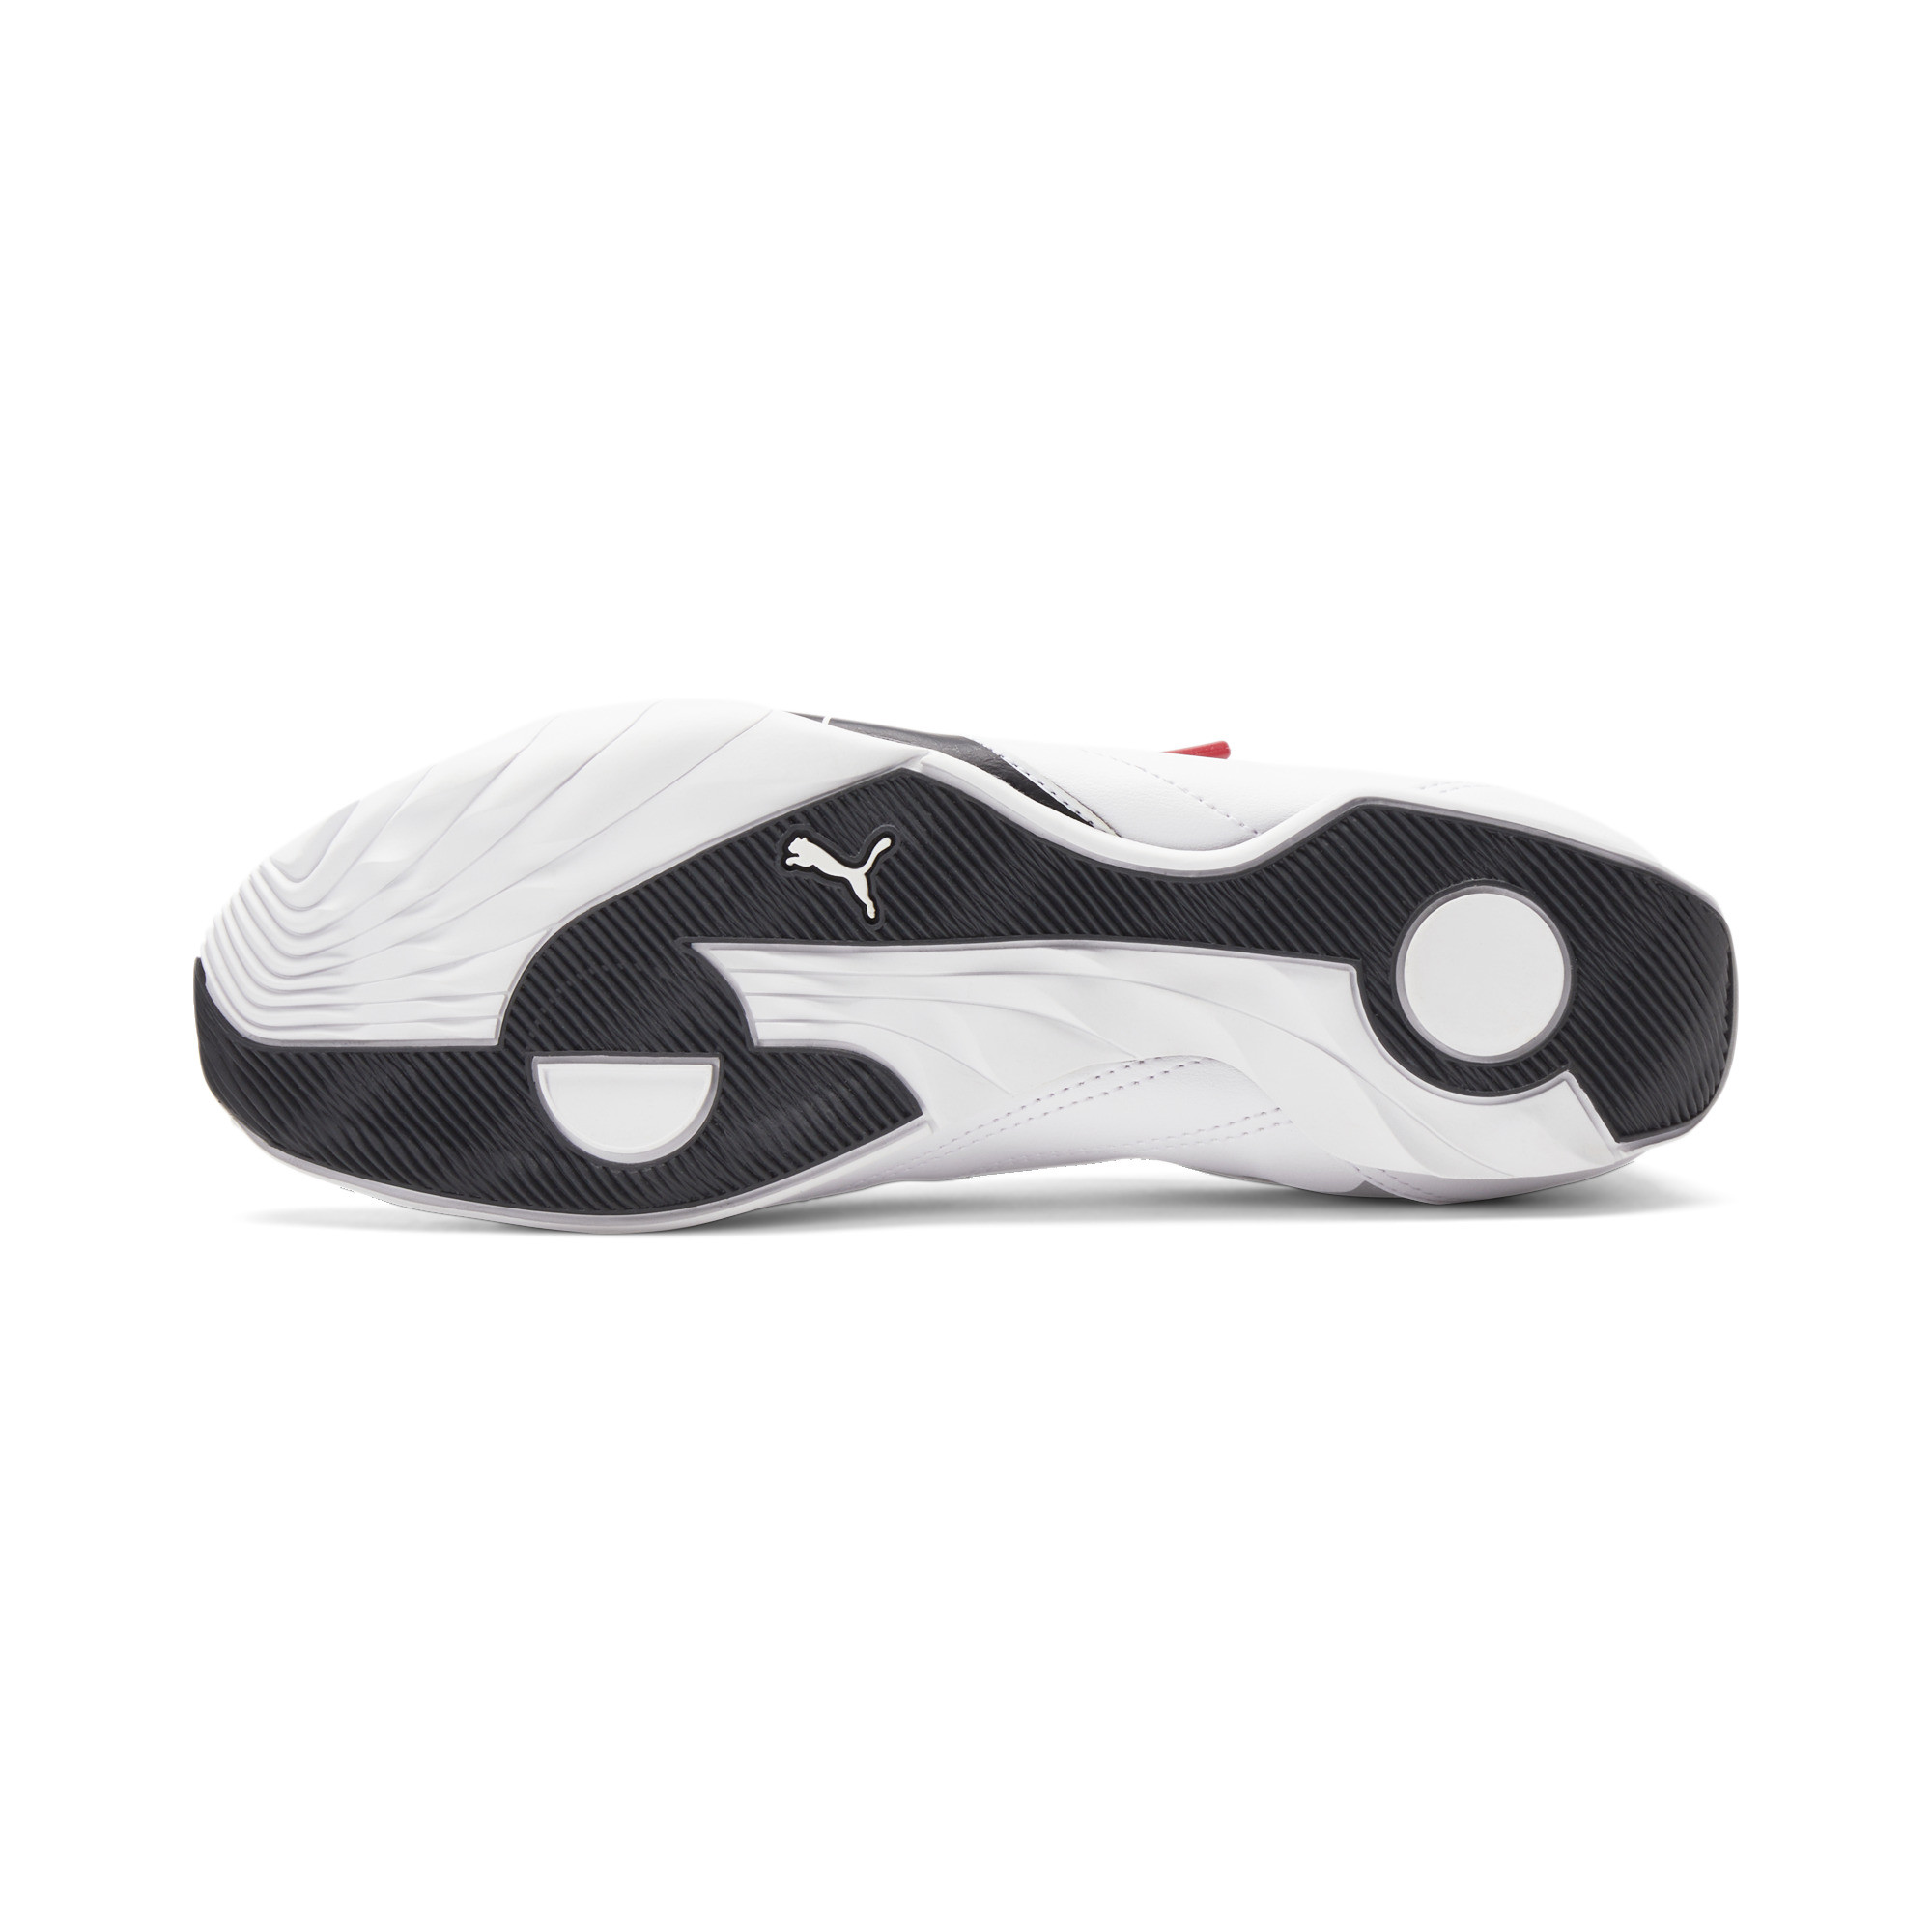 PUMA-Redon-Move-Men-039-s-Shoes-Men-Shoe-Sport-Shoe thumbnail 11